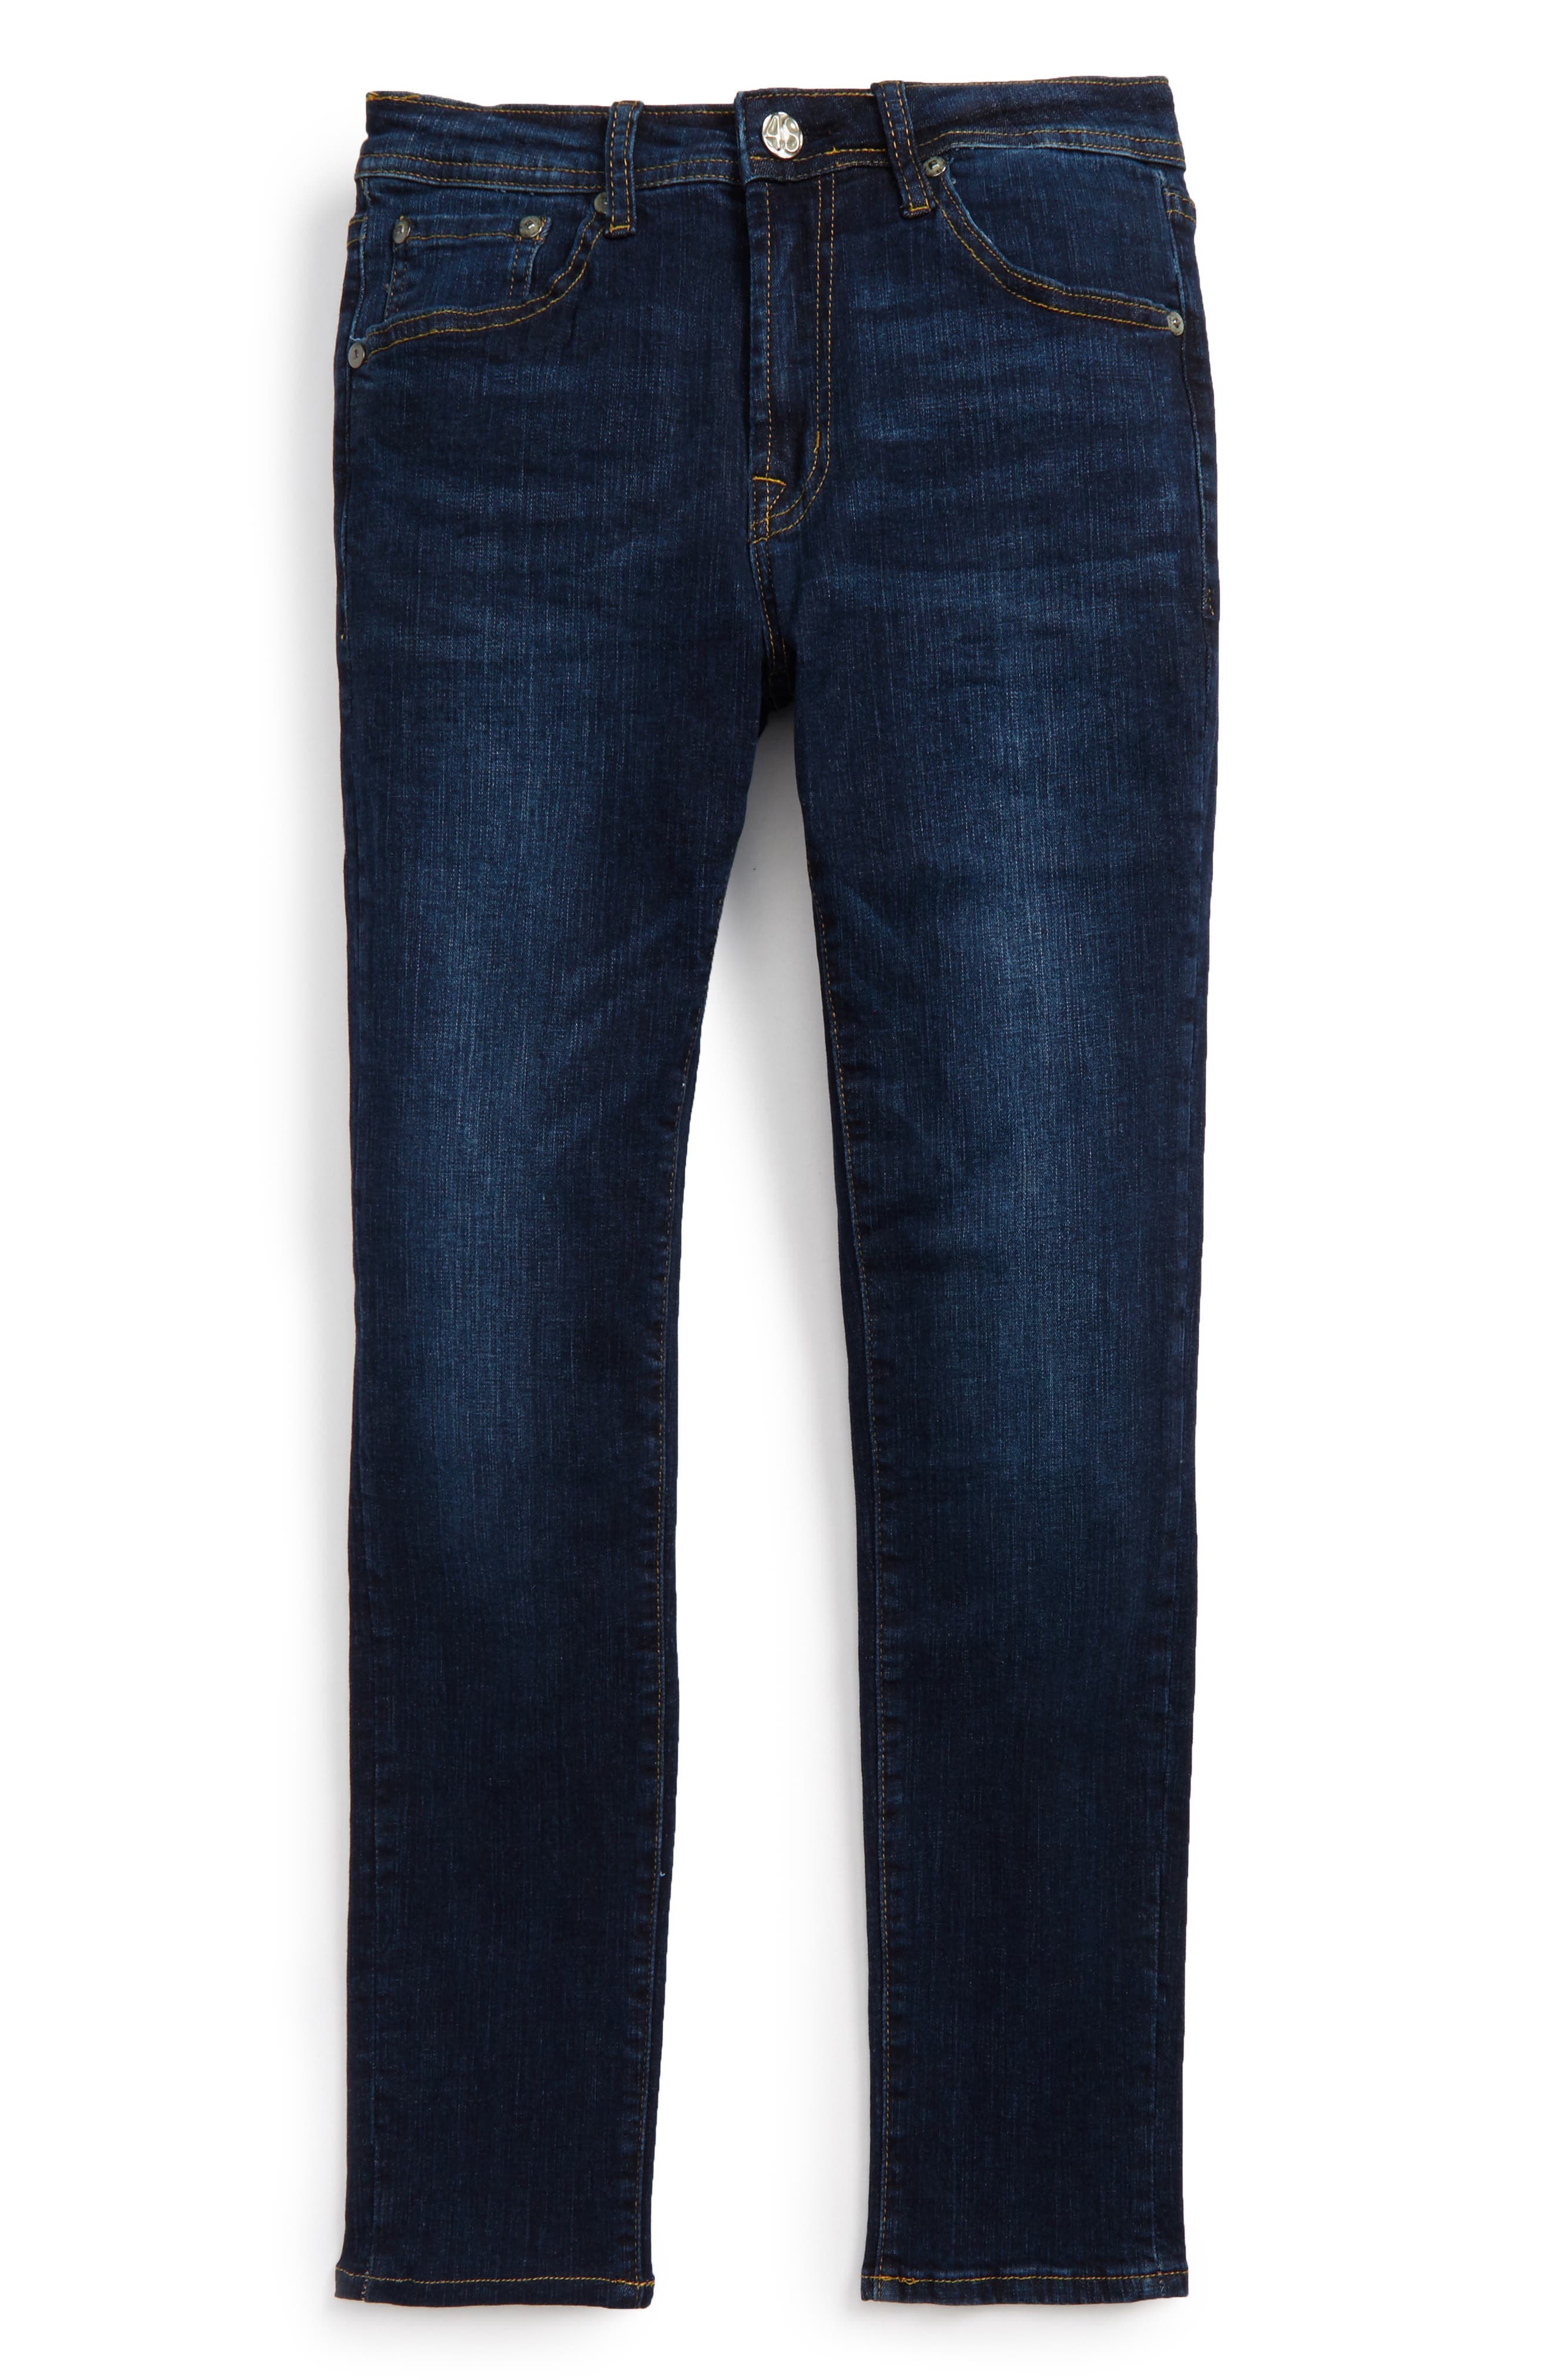 ag adriano goldschmied kids The Stryker Slim Straight Leg Jeans (Toddler Boys, Little Boys & Big Boys)